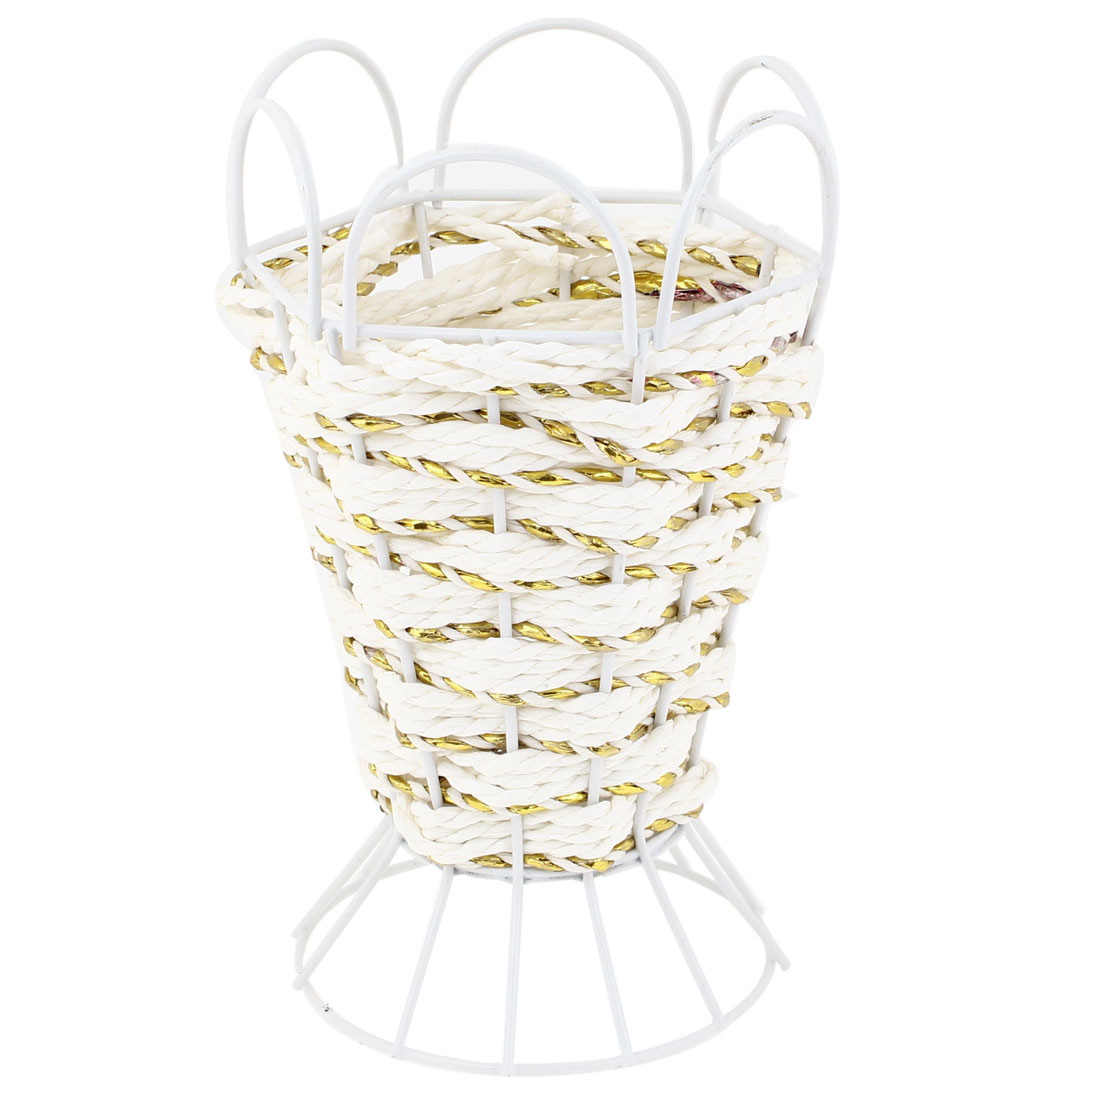 Household Pure Handmade Paper String Vase Sundries Storage Basket Holder White